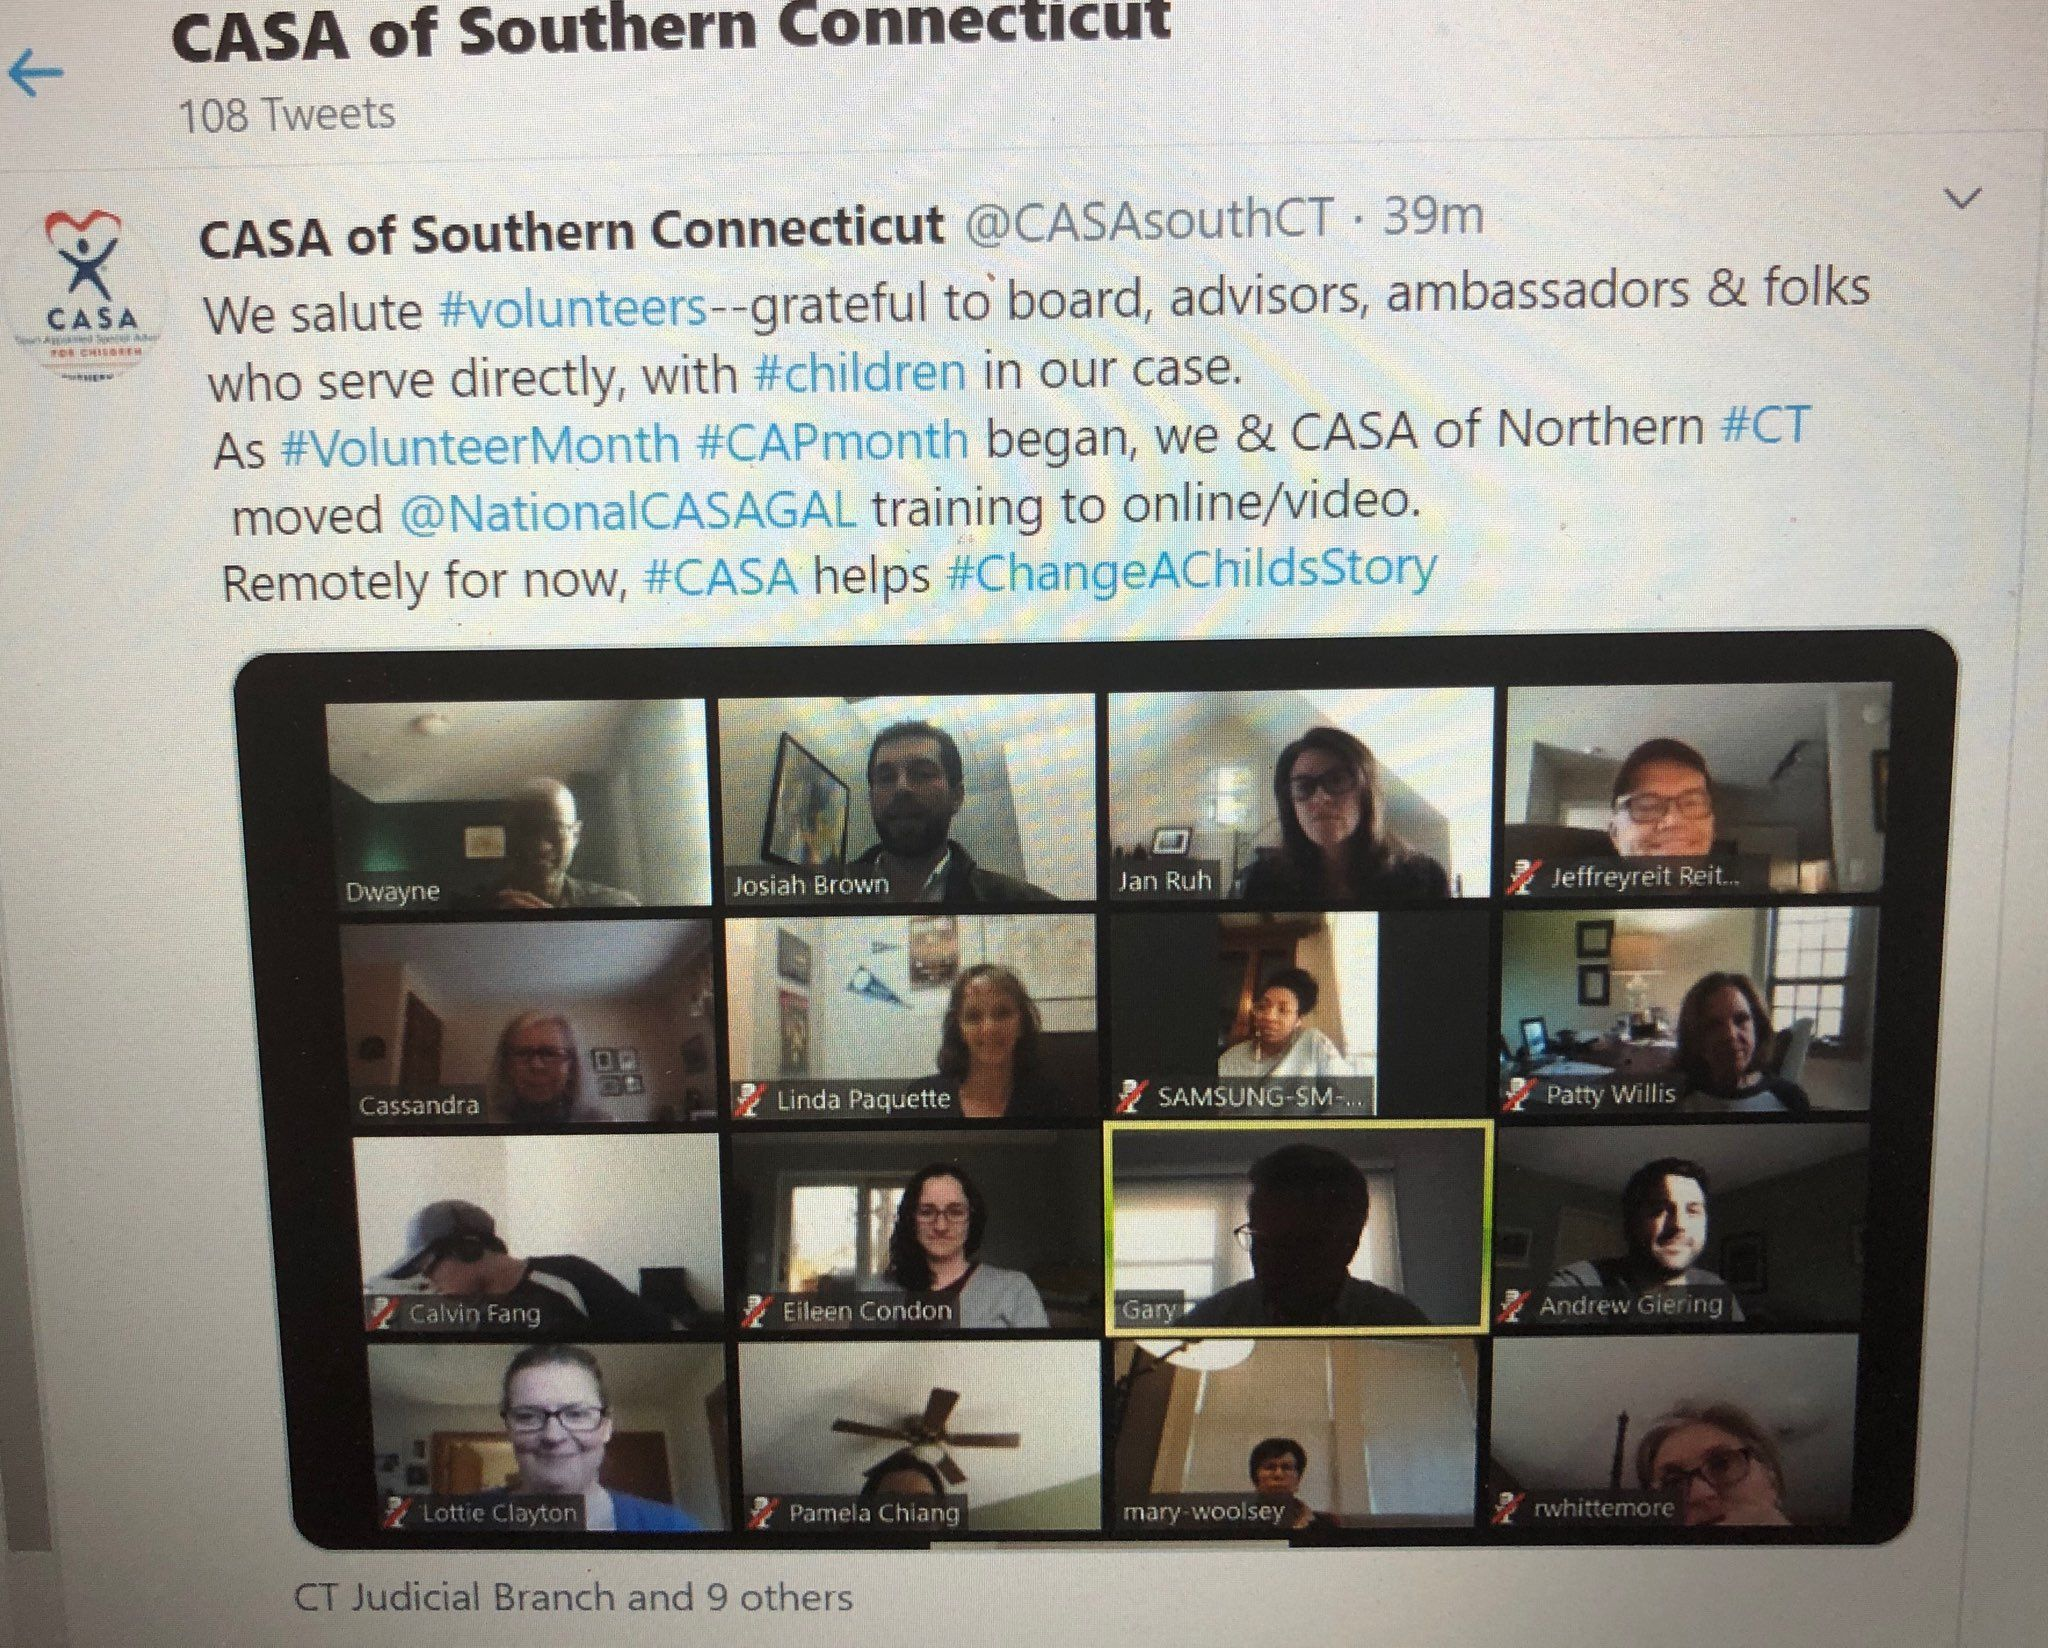 CASA of Southern Connecticut (and of Northern Connecticut) moving training online